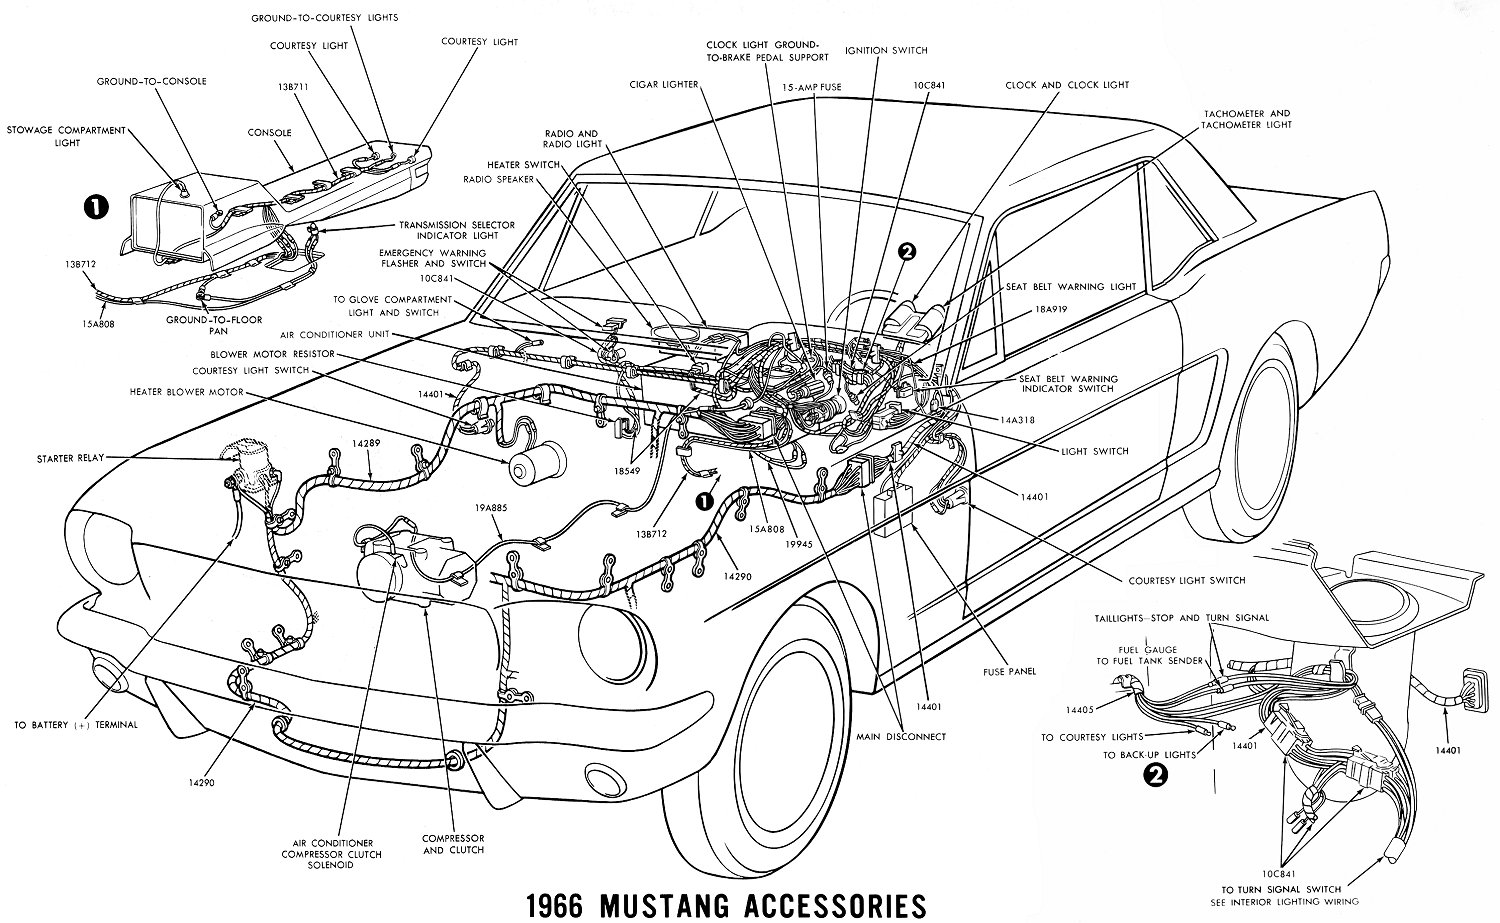 ... and interior courtesy lights. sm66acc 1966 Mustang Accessories ·  Schematic